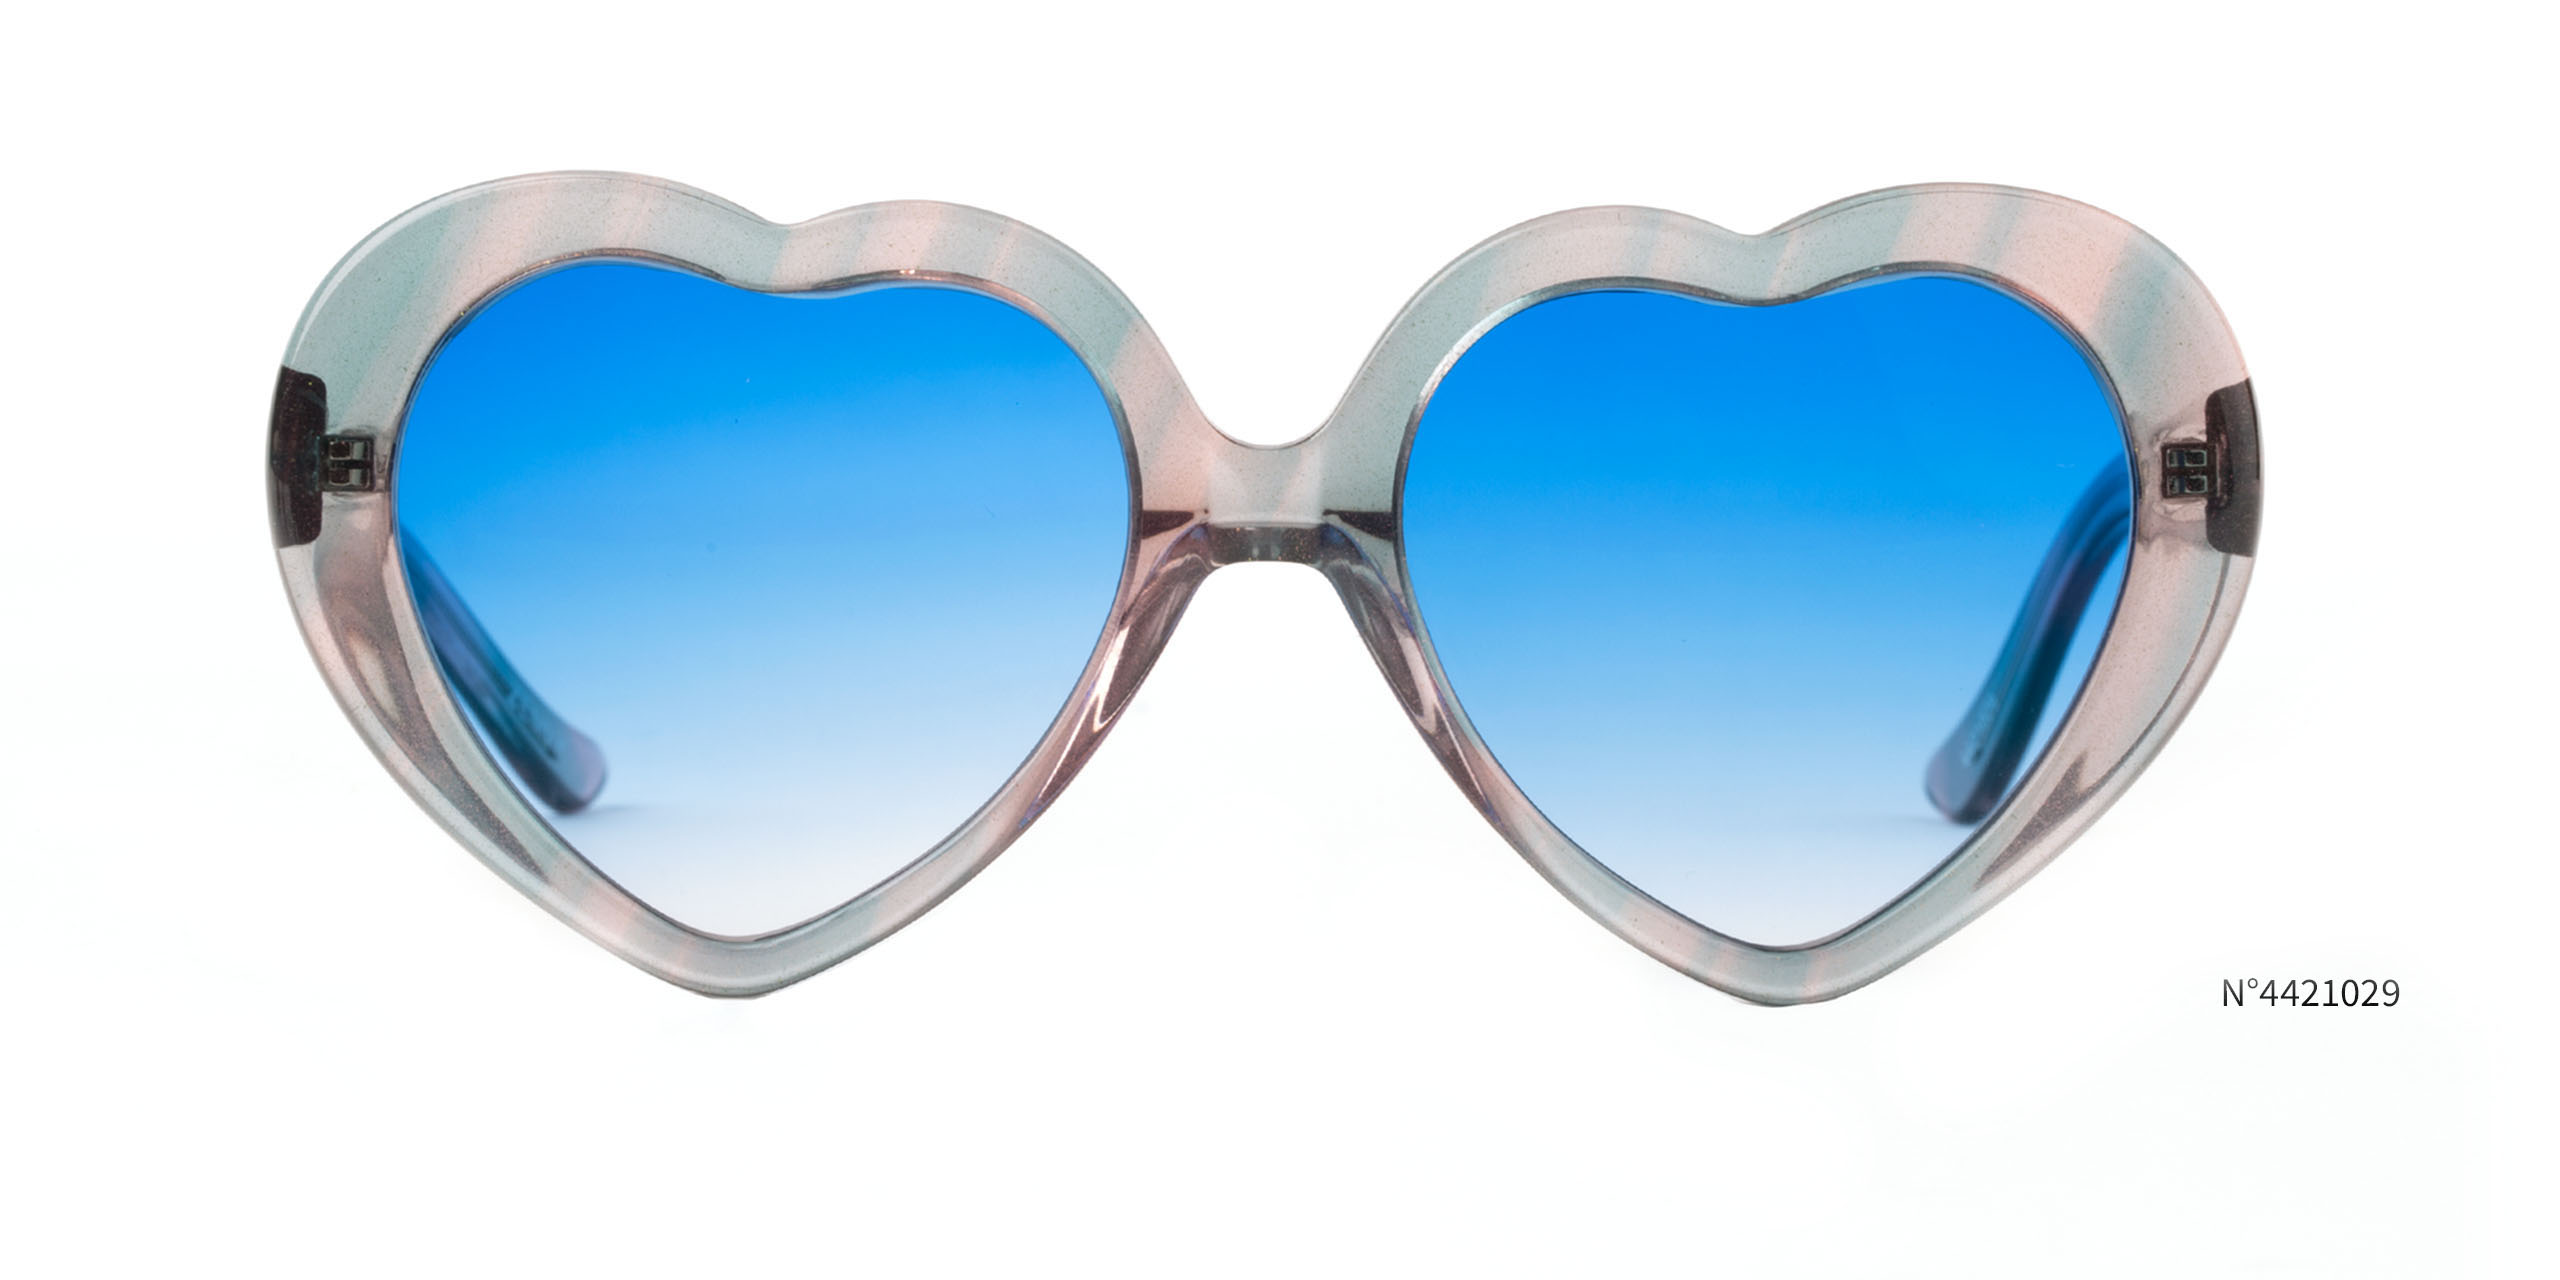 Zenni Optical Heart Shaped Glasses : EDC Outfits, Sunglasses, and Celebrity Style Zenni Optical